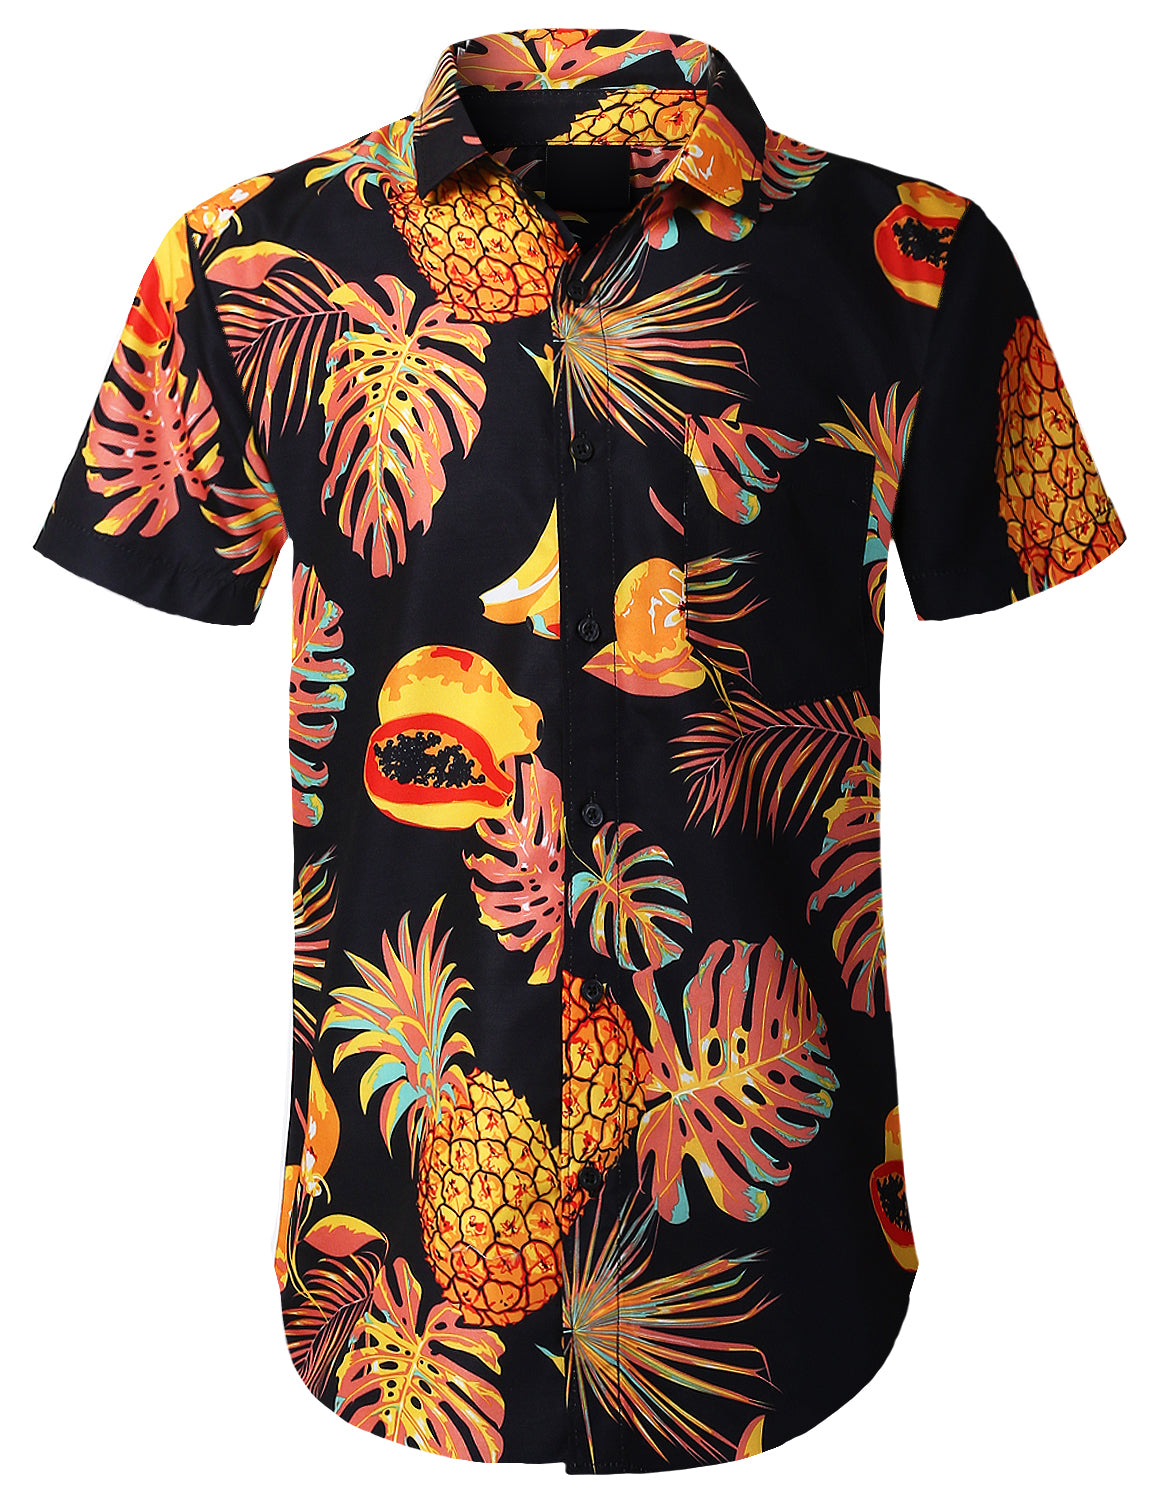 BLACK Allover Fruits Printed Button Shirts - URBANCREWS